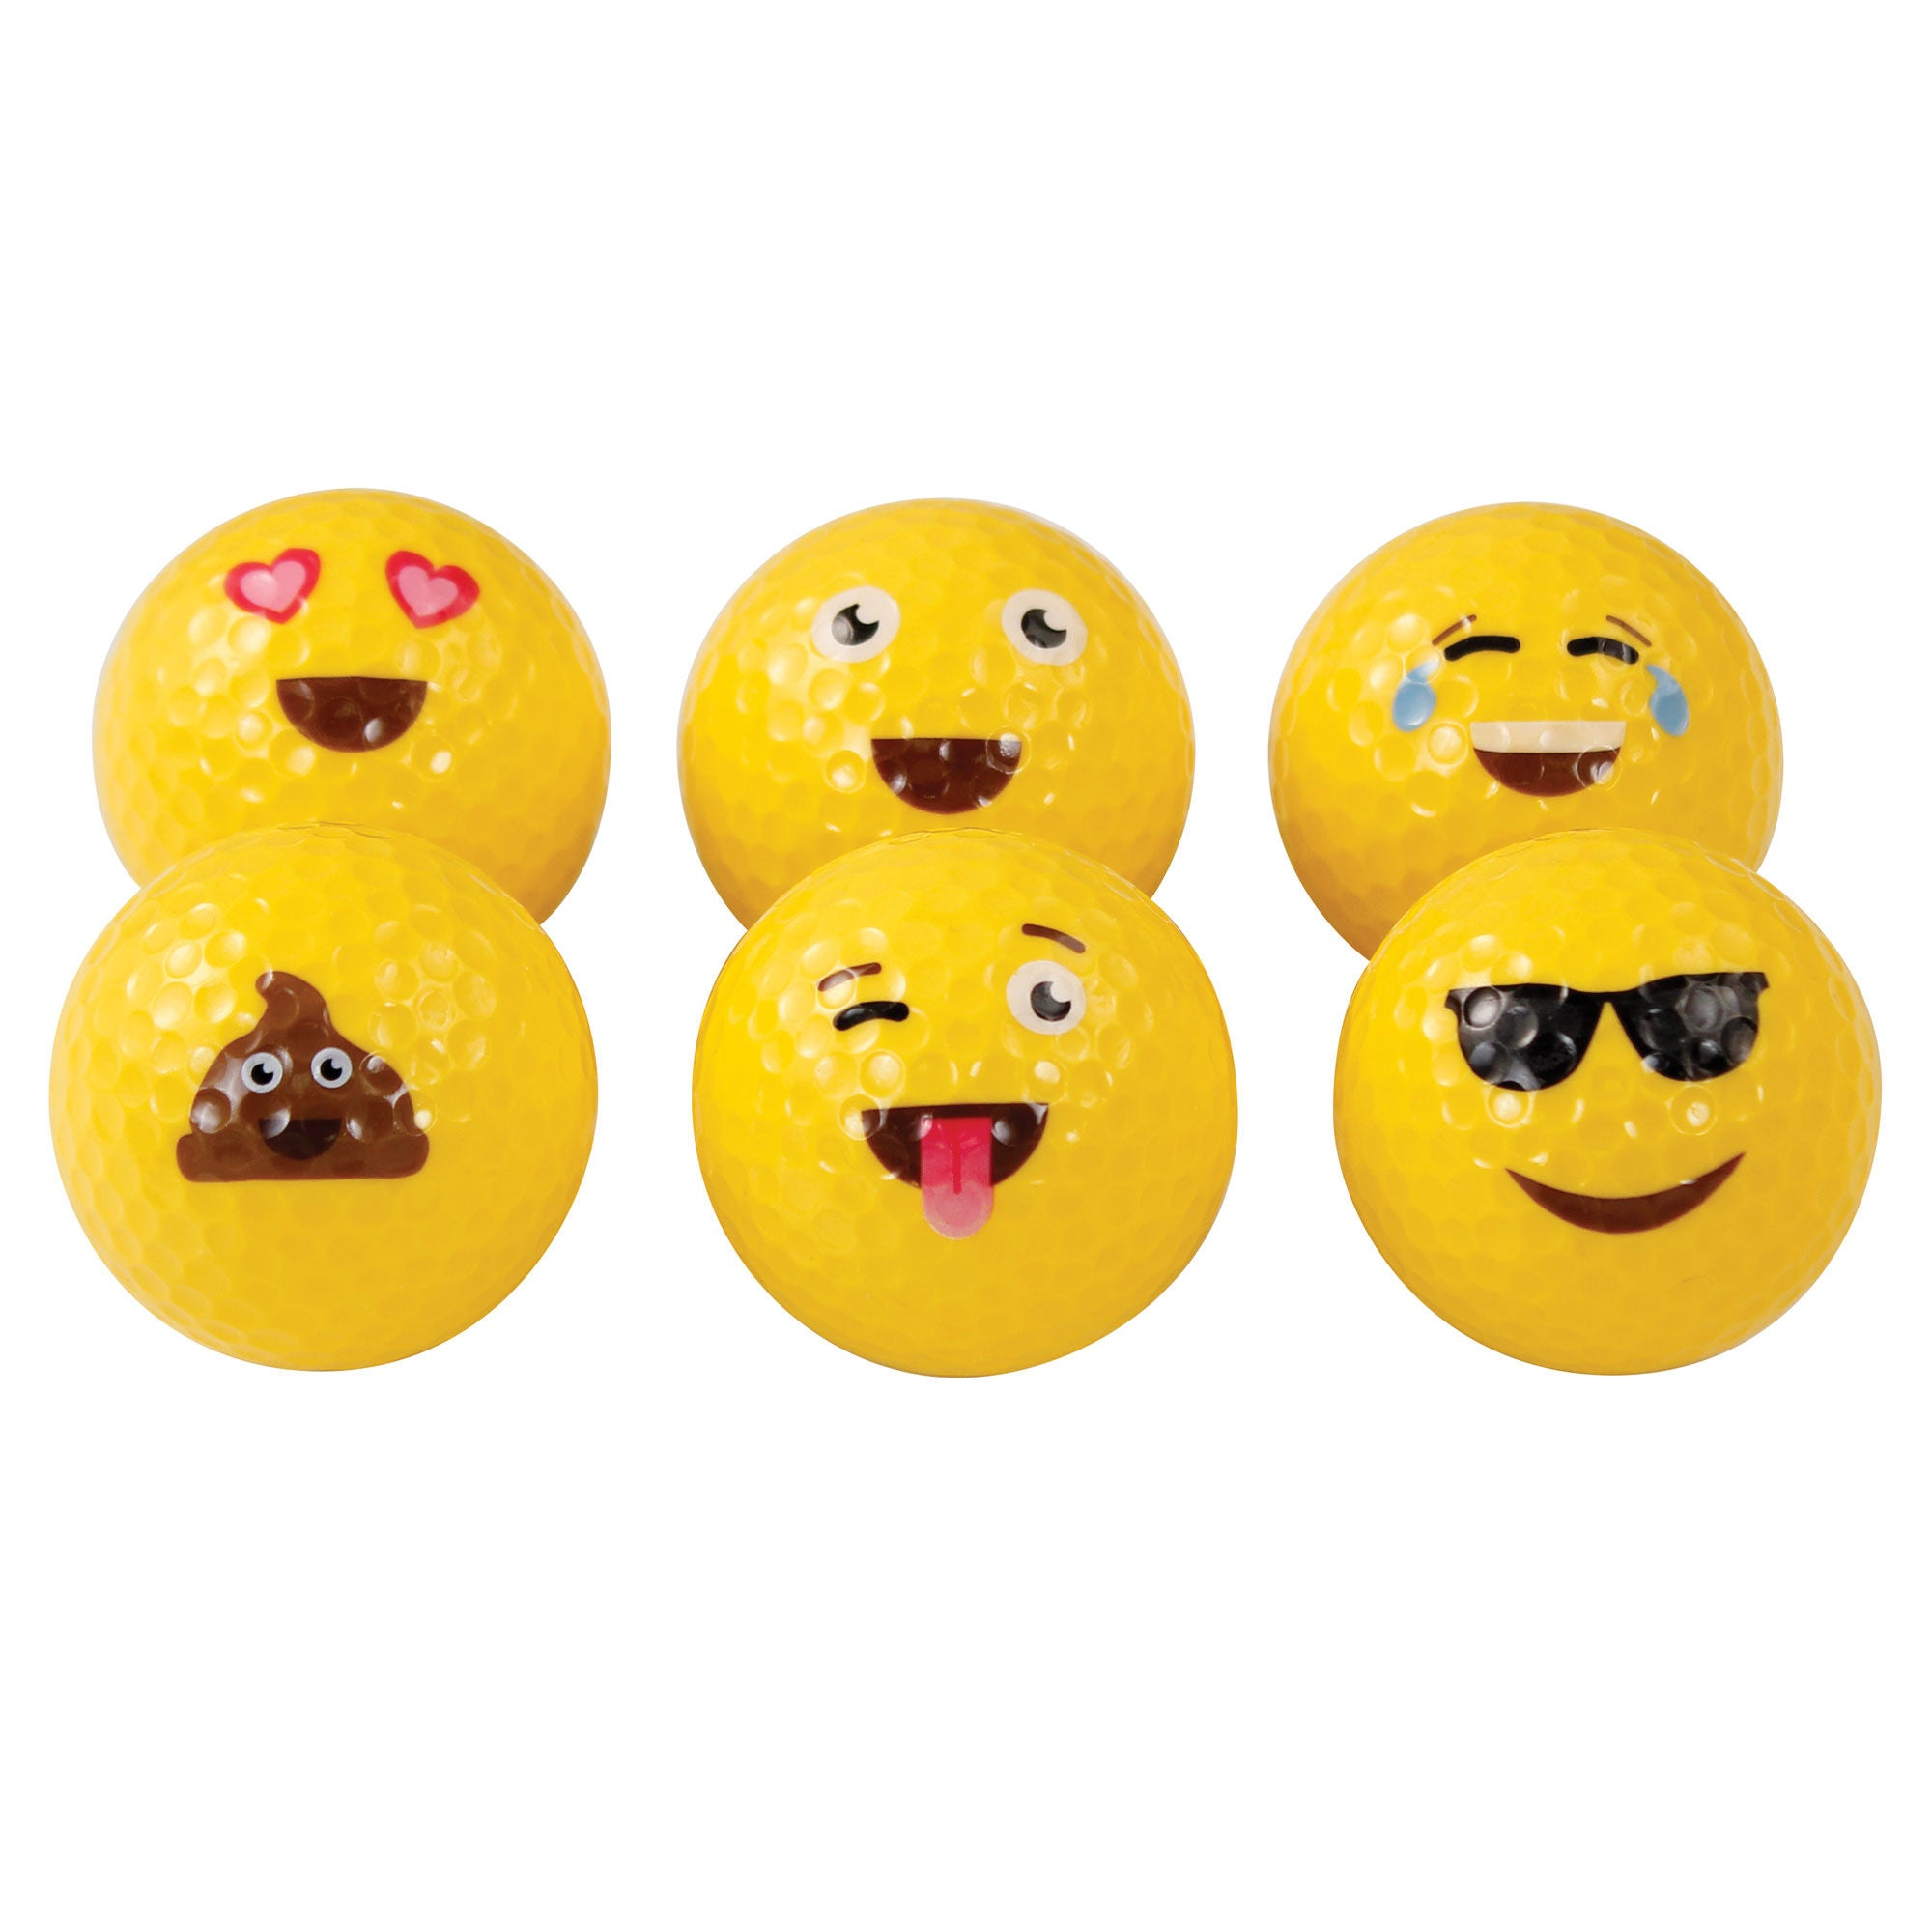 Emoji Golf Balls (Pack of 6 Assorted) - Event Stuff Ltd Owns Putterfingers.com!